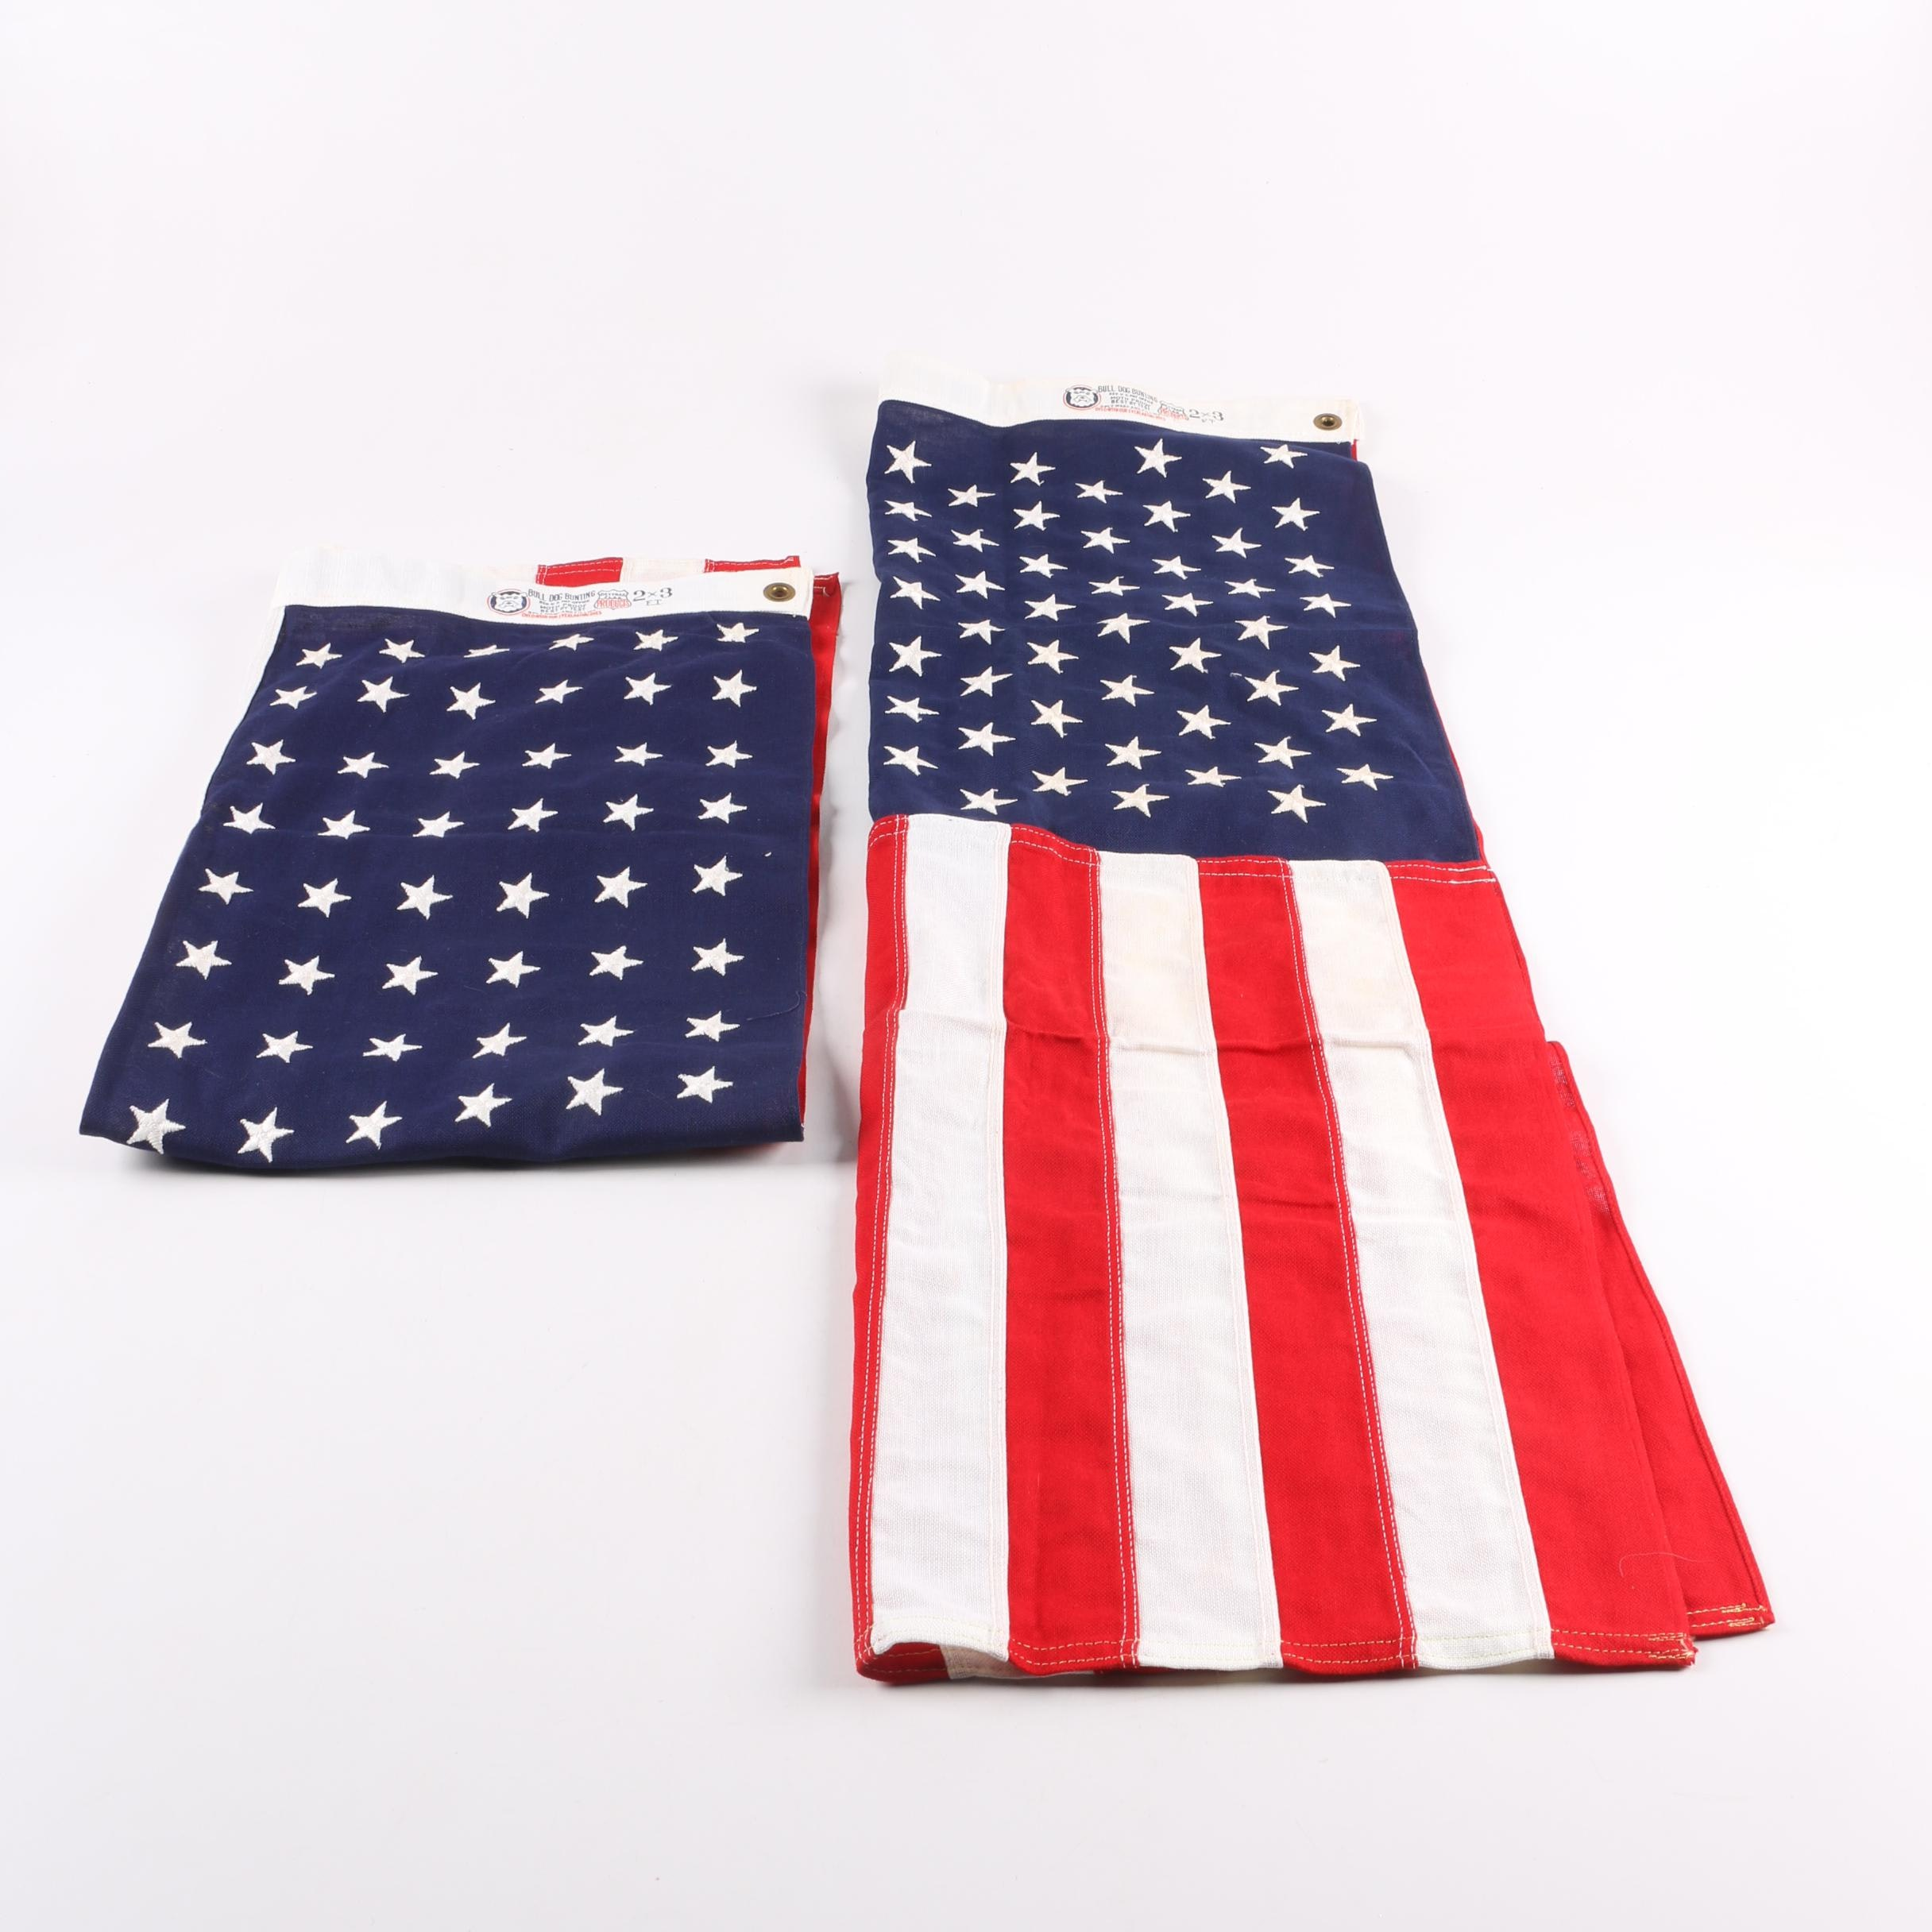 Forty Eight and Forty Nine Star United States Flag